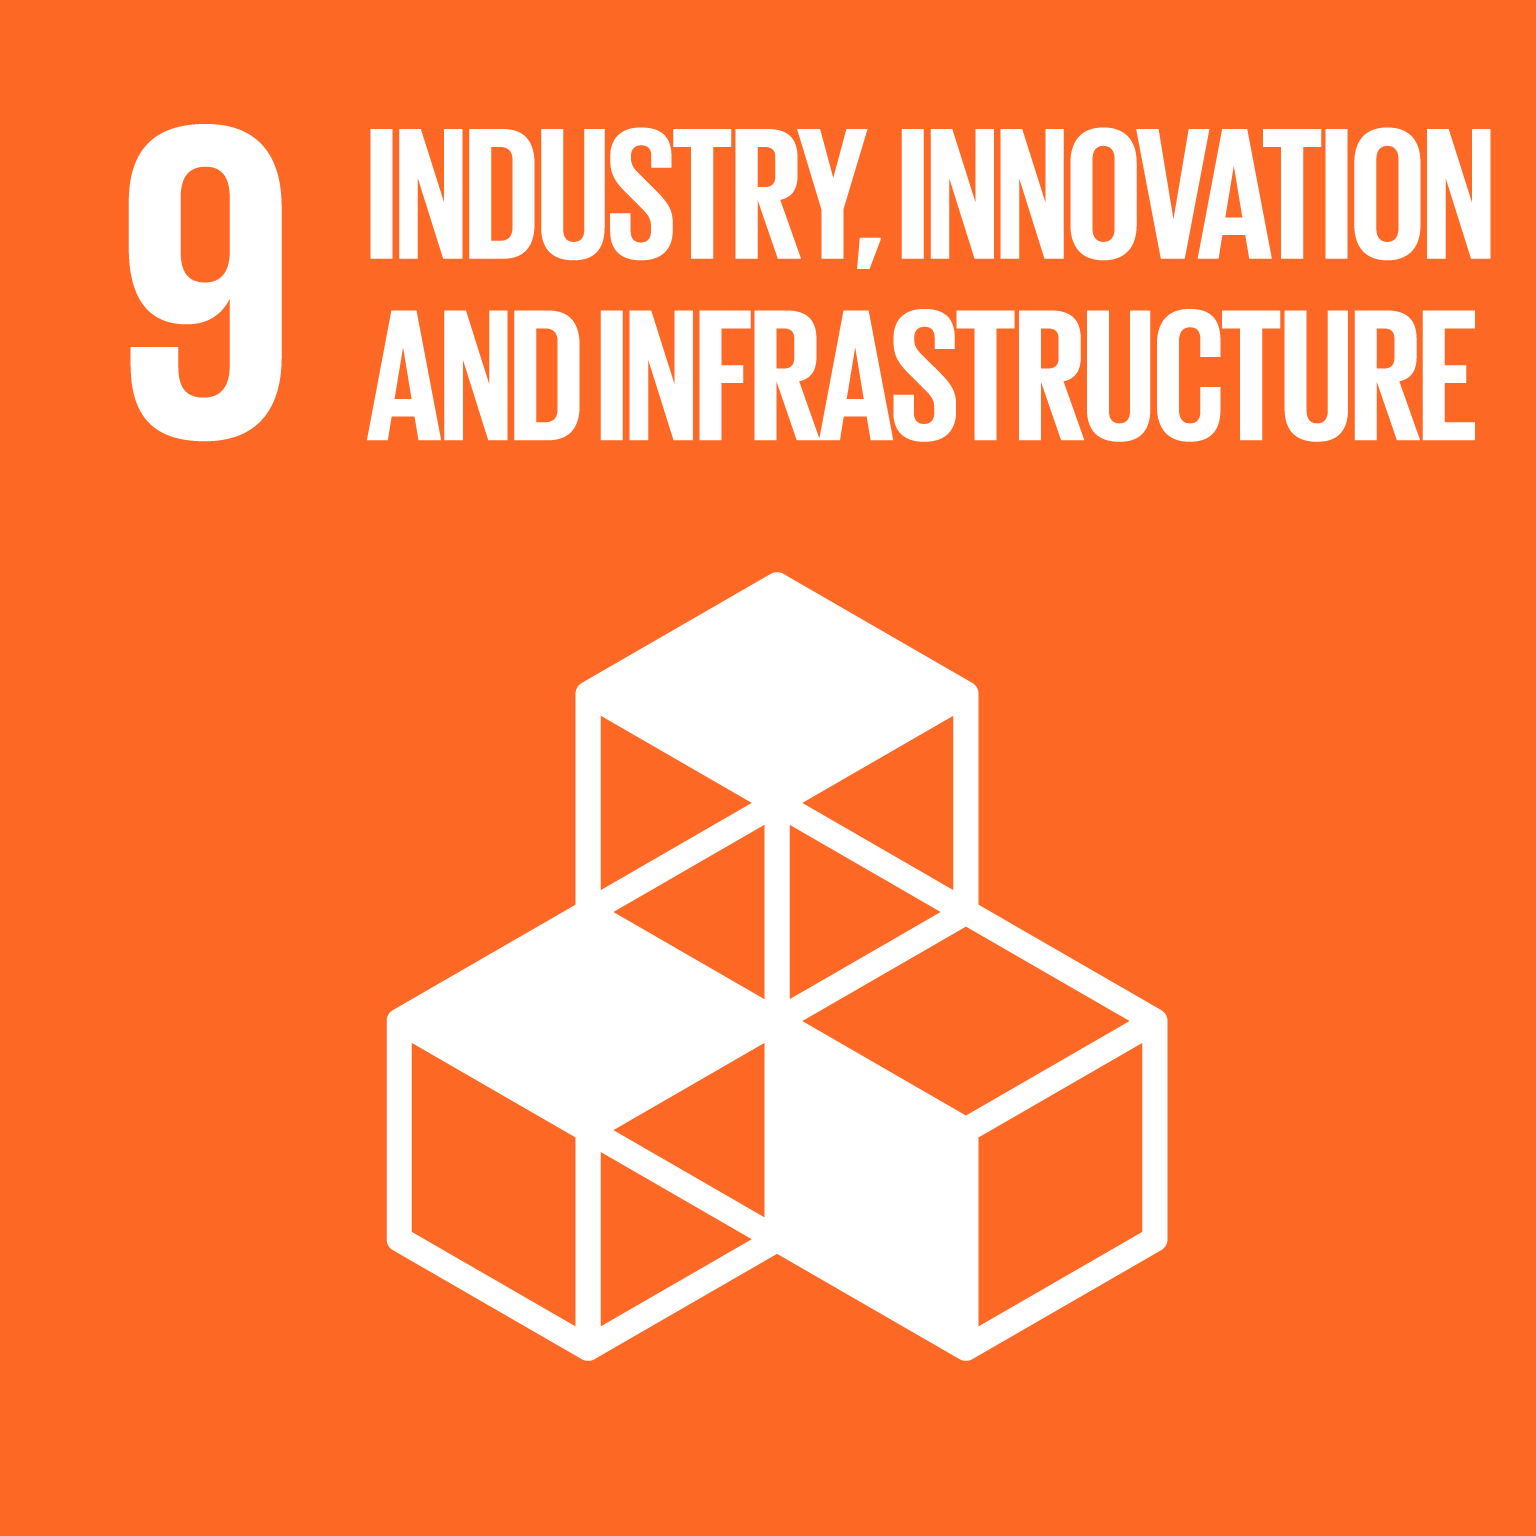 sdg icon #9 INDUSTRY, INNOVATION AND INFRASTRUCTURE